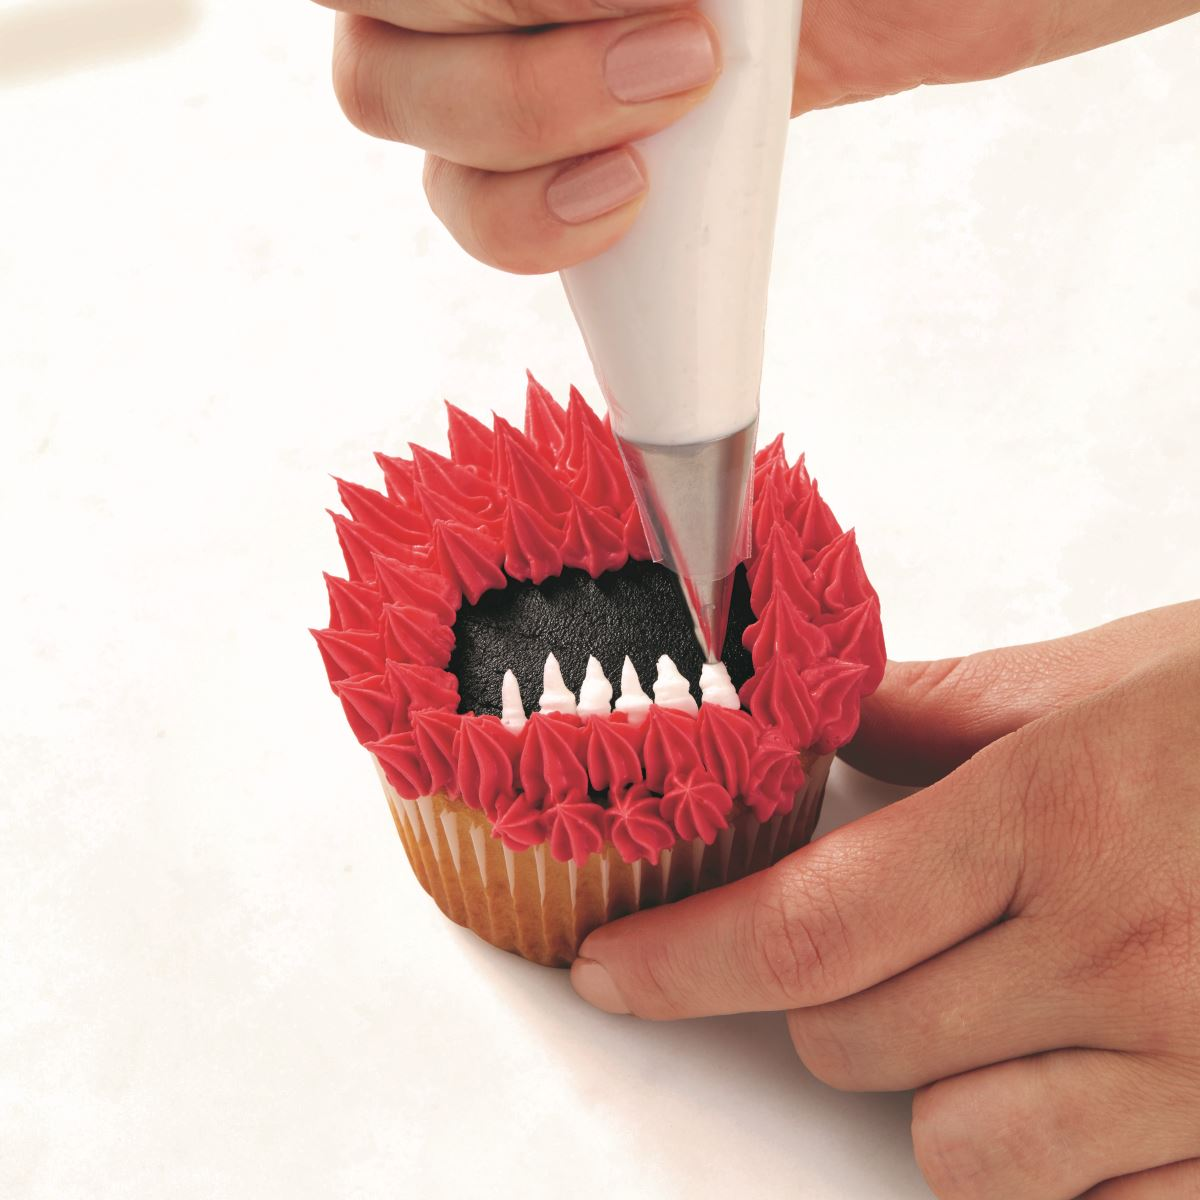 PINK ONE-EYED MONSTER CUPCAKE step 3